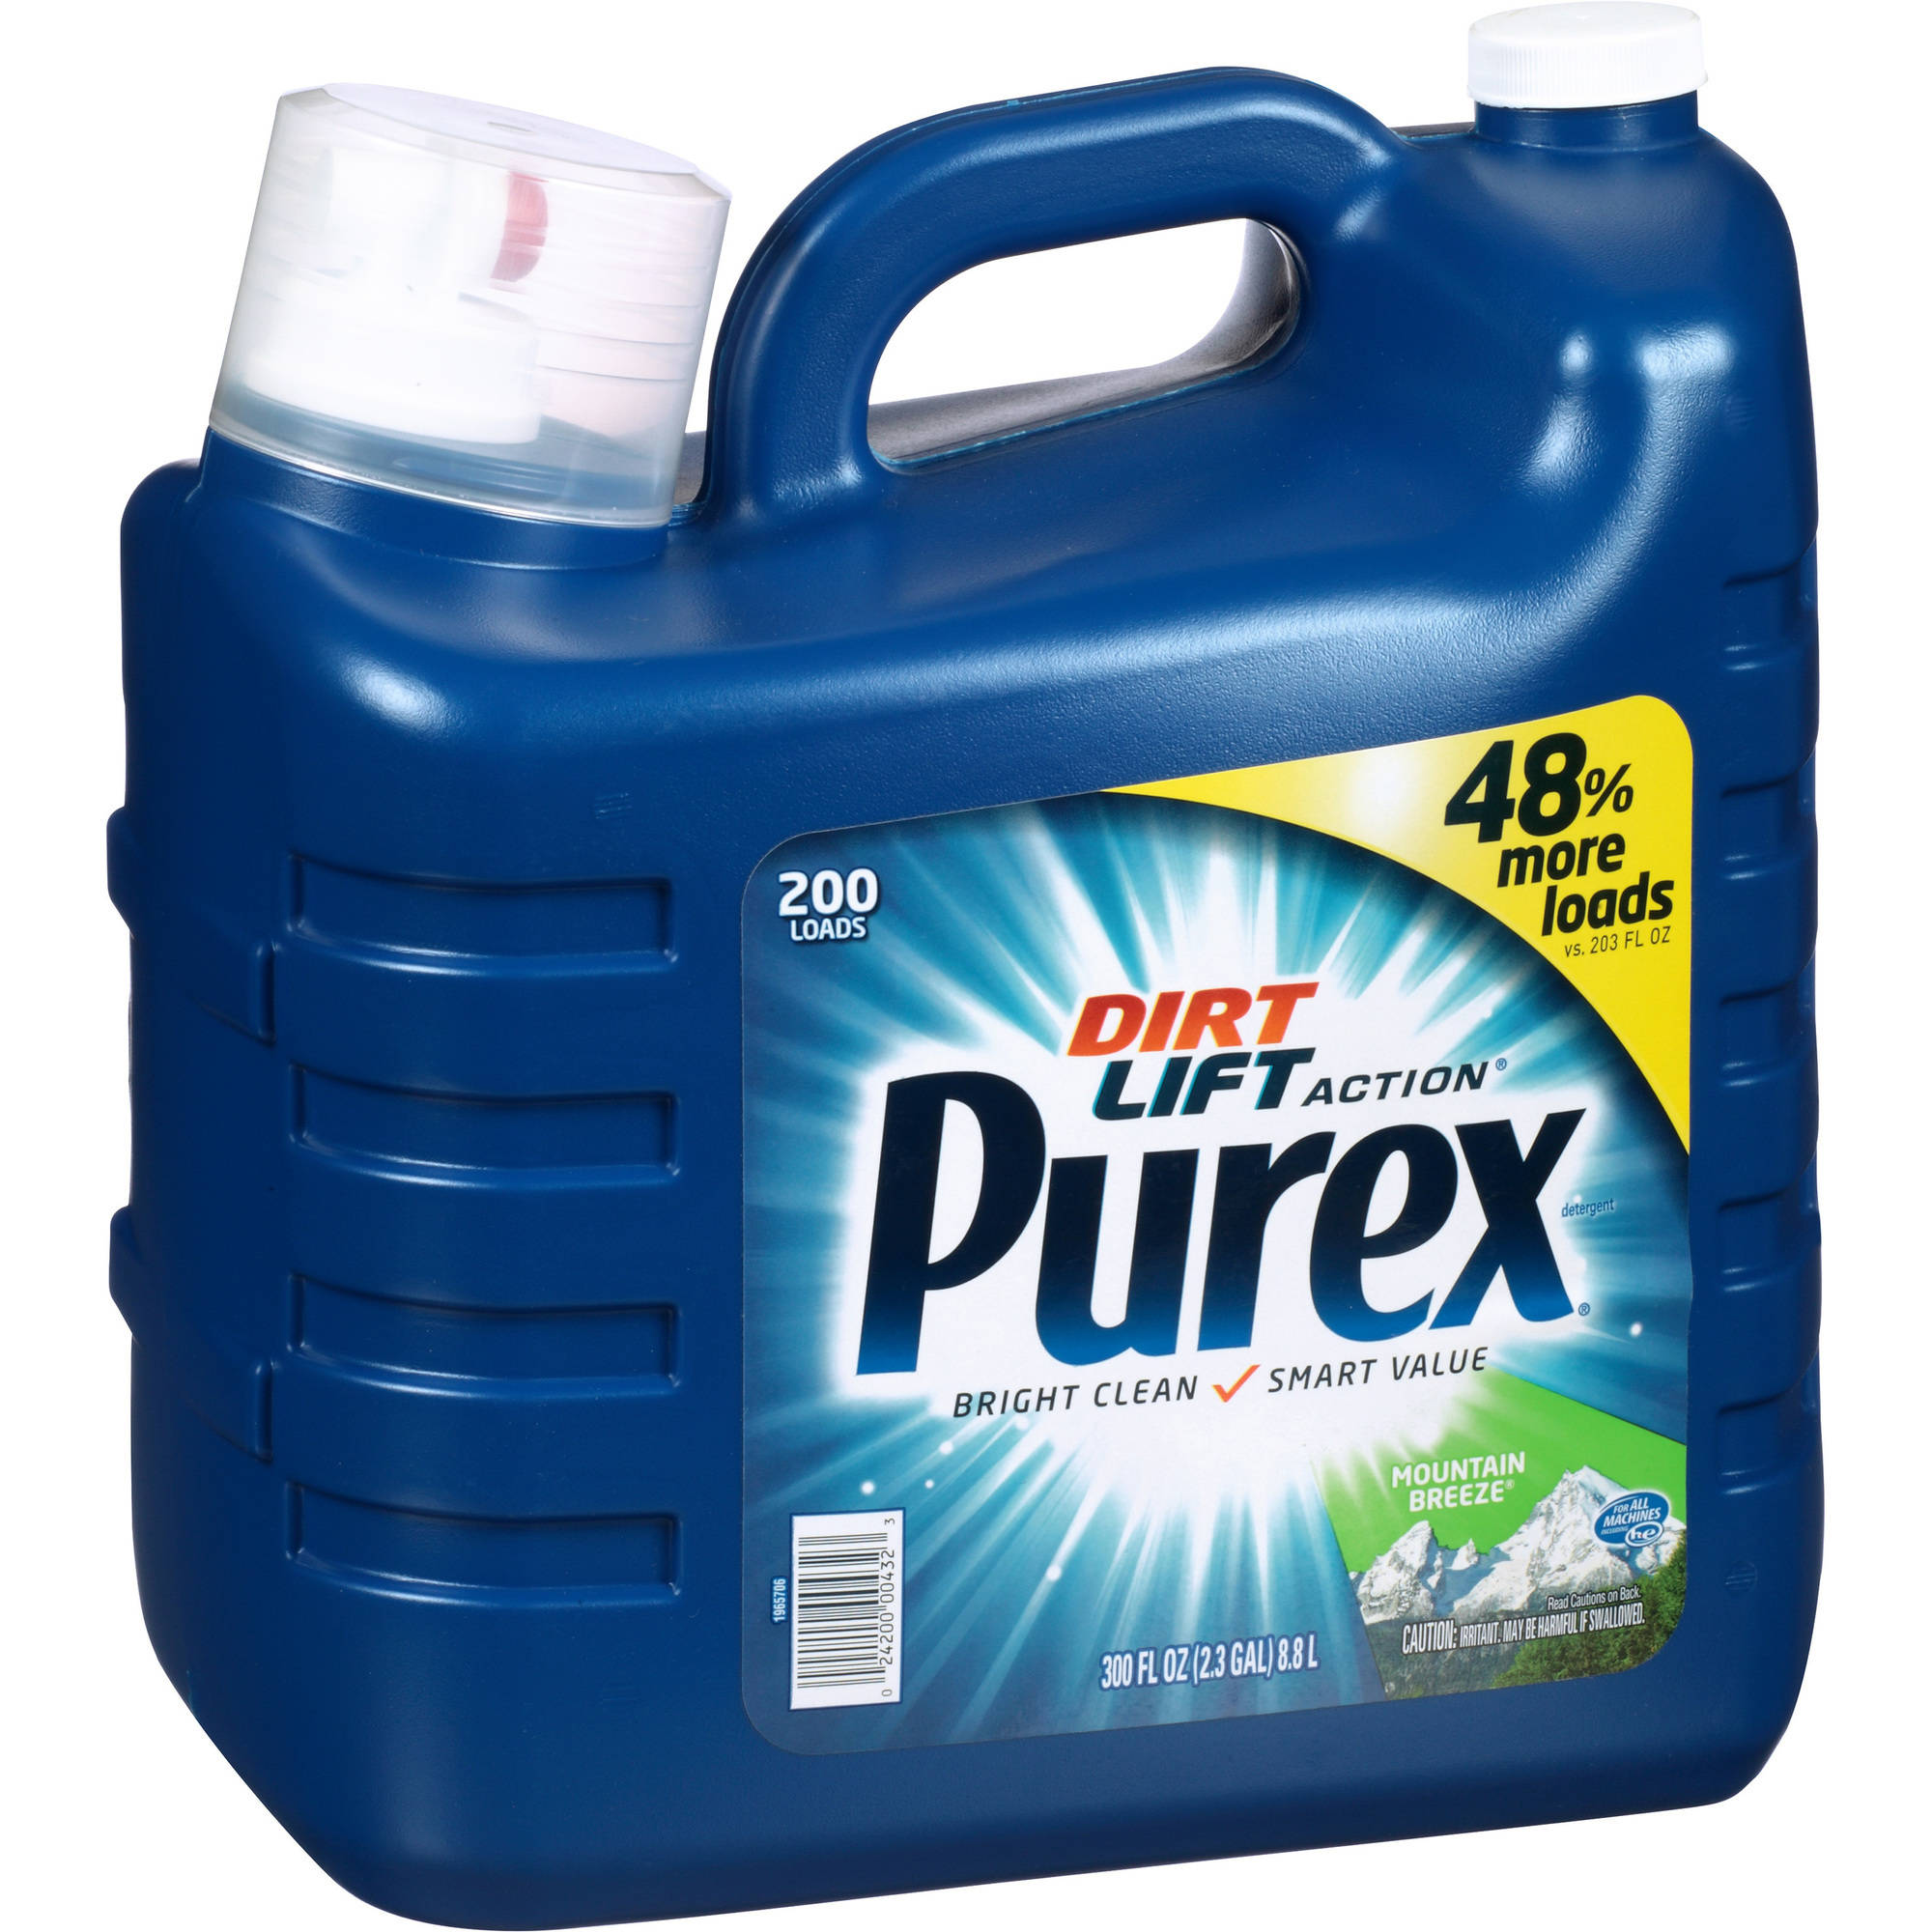 Purex Mountain Breeze Dirt Lift Action Liquid Laundry Detergent, 200 loads, 300 fl oz